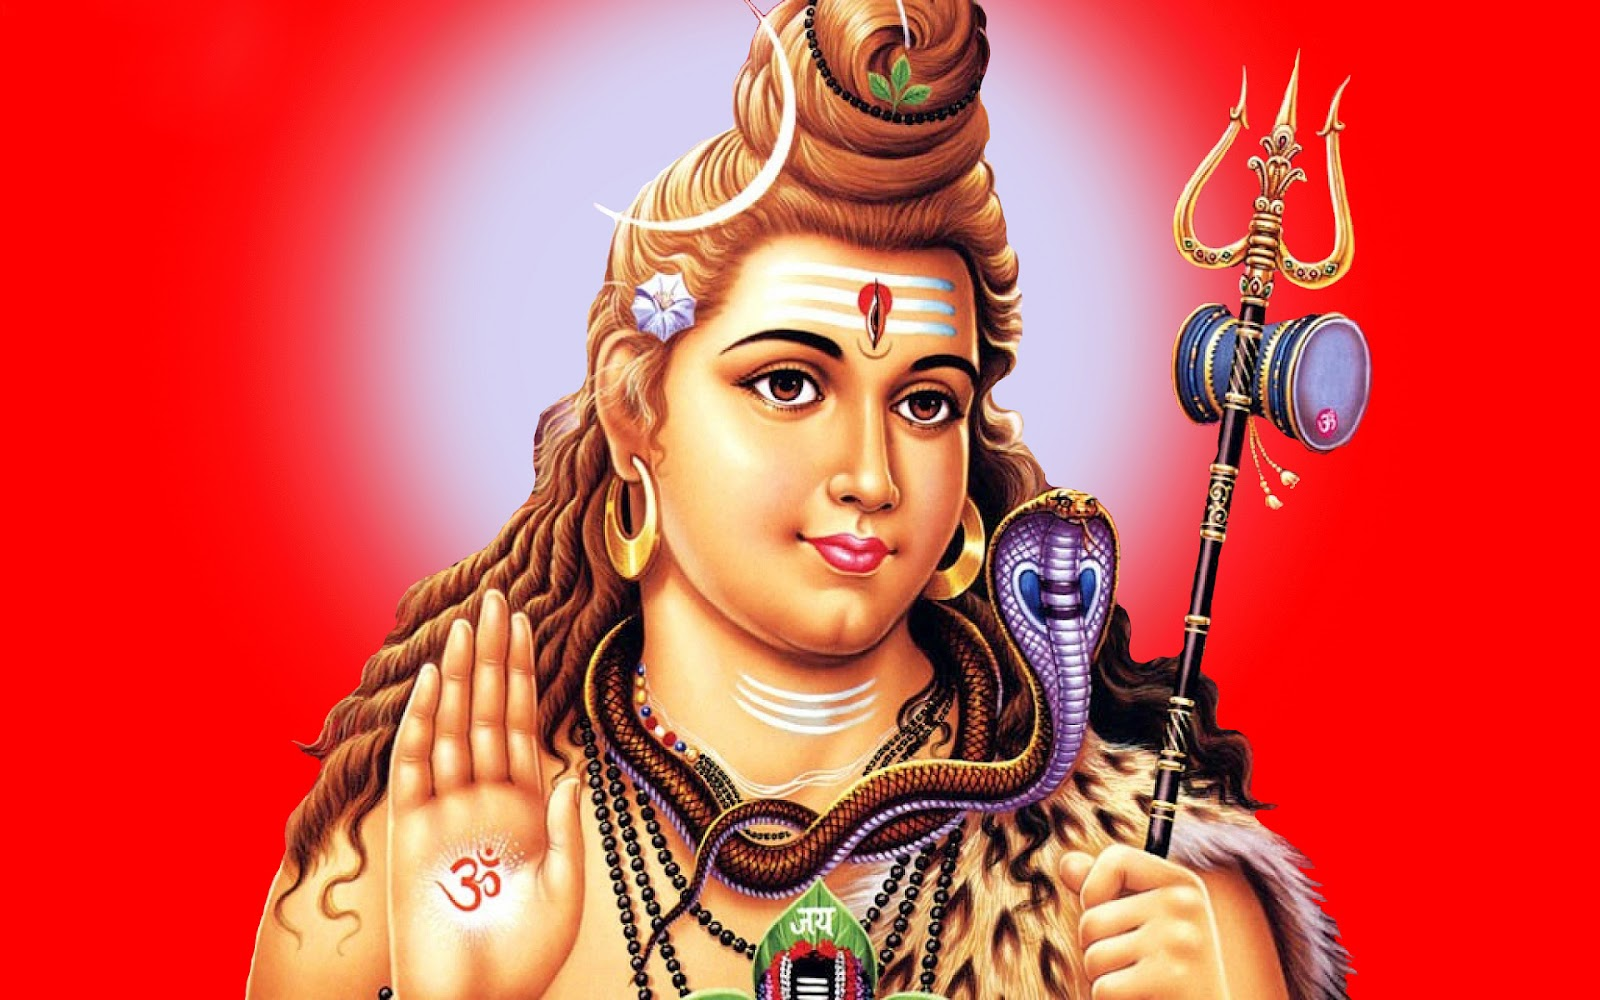 Lord Shiva Hd Wallpapers: Lord Shiva Wallpaper And Beautiful Images